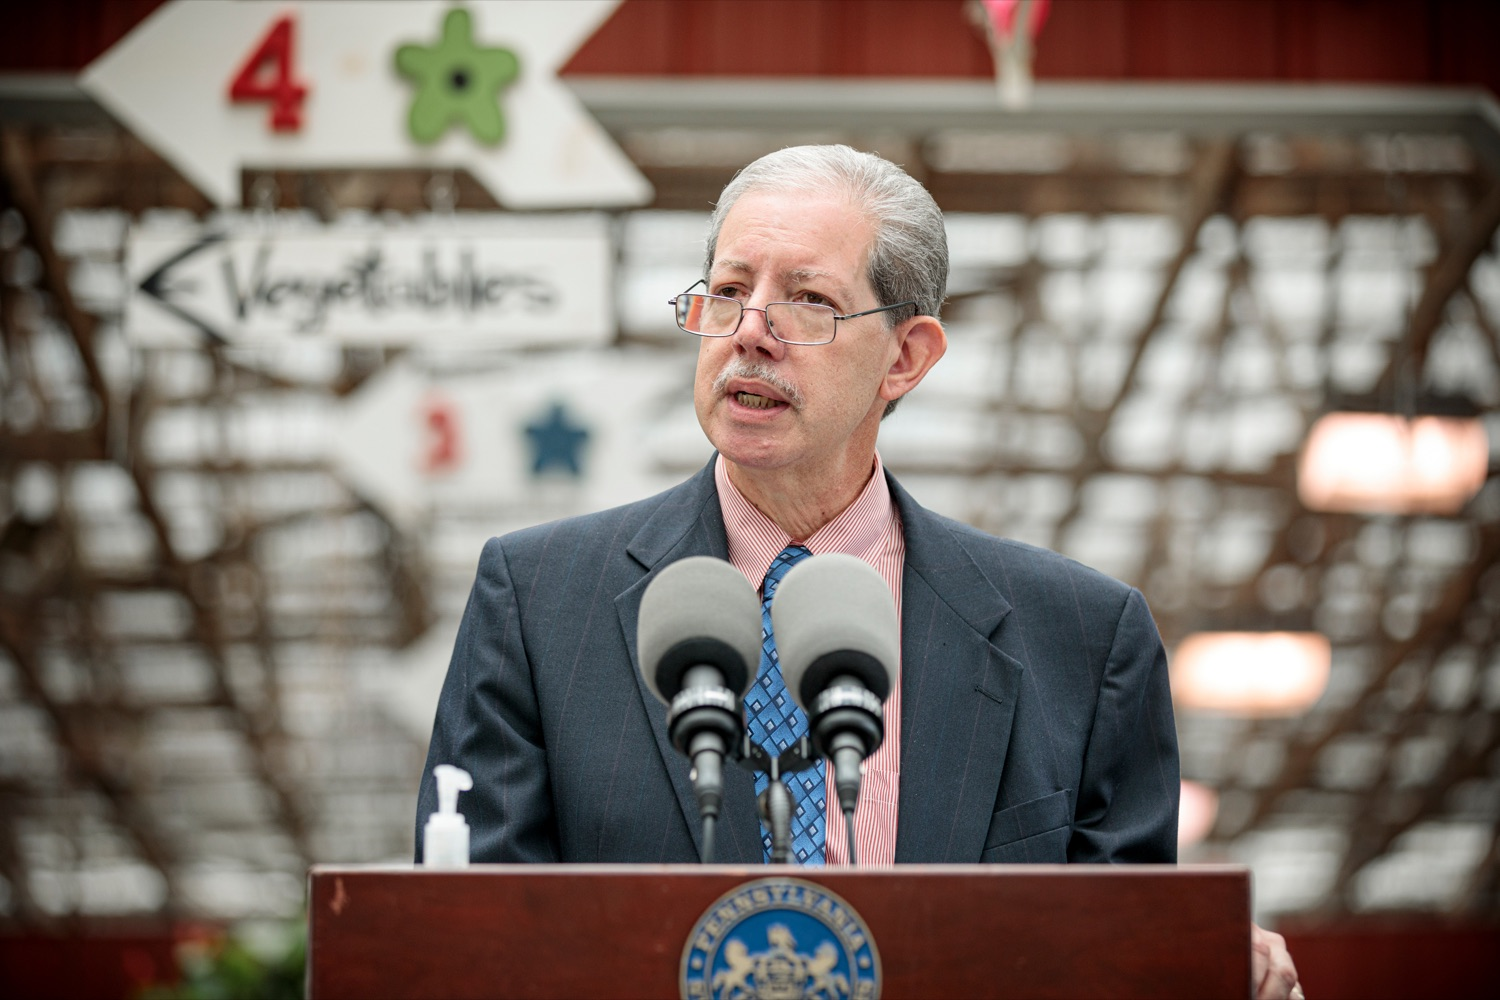 "<a href=""https://filesource.wostreaming.net/commonwealthofpa/photo/18235_AGRIC_SLF_NK_012.jpg"" target=""_blank"">⇣ Download Photo<br></a>Carlos Martinez, executive director of field operations for the USDA, during a press conference urging Pennsylvanians to act now against the Spotted Lanternfly for the sake of food security, at Cherry Hill Orchard Outlet and Garden Center in Lancaster on Thursday, September 10, 2020."